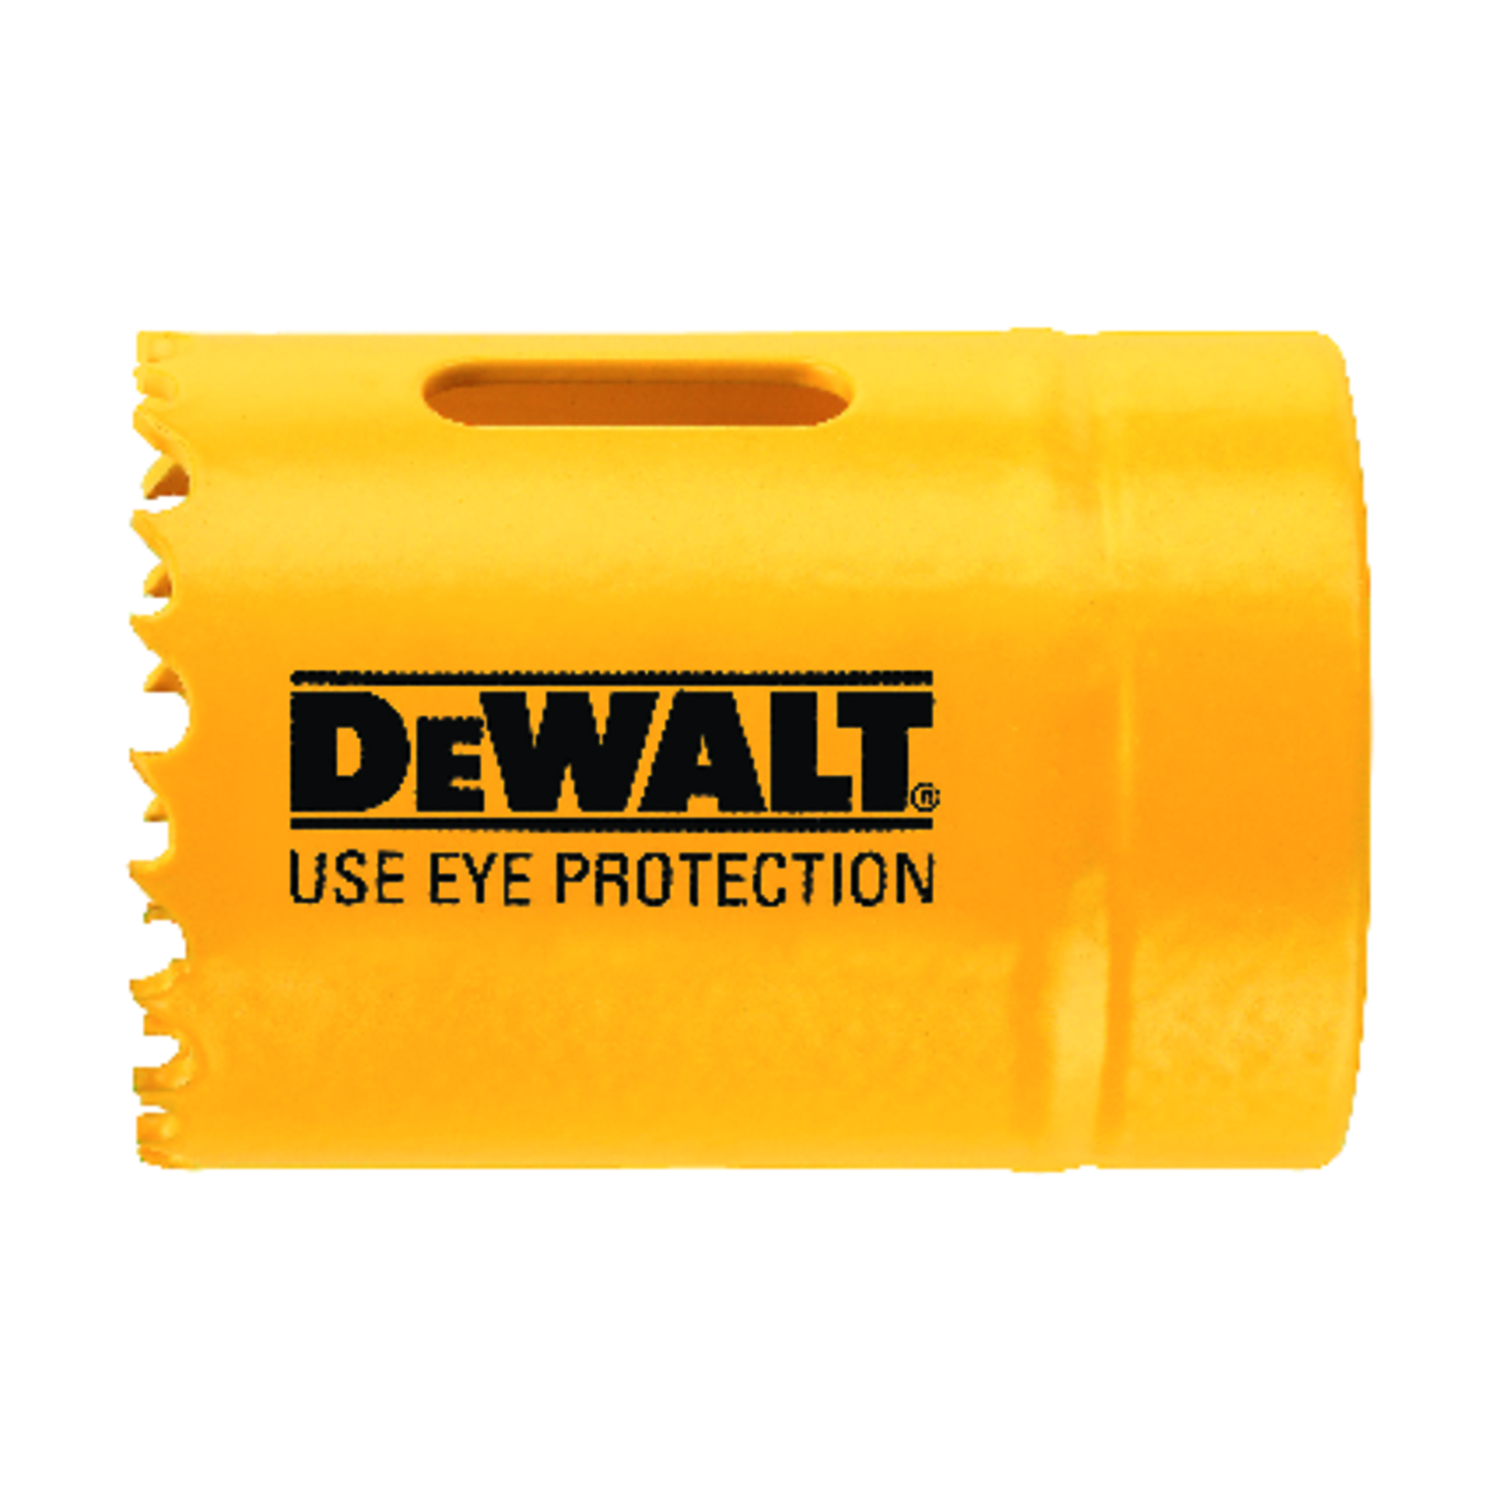 DeWalt  1 in. Dia. x 1.75 in. L Bi-Metal  Hole Saw  1/4 in. 1 pc.